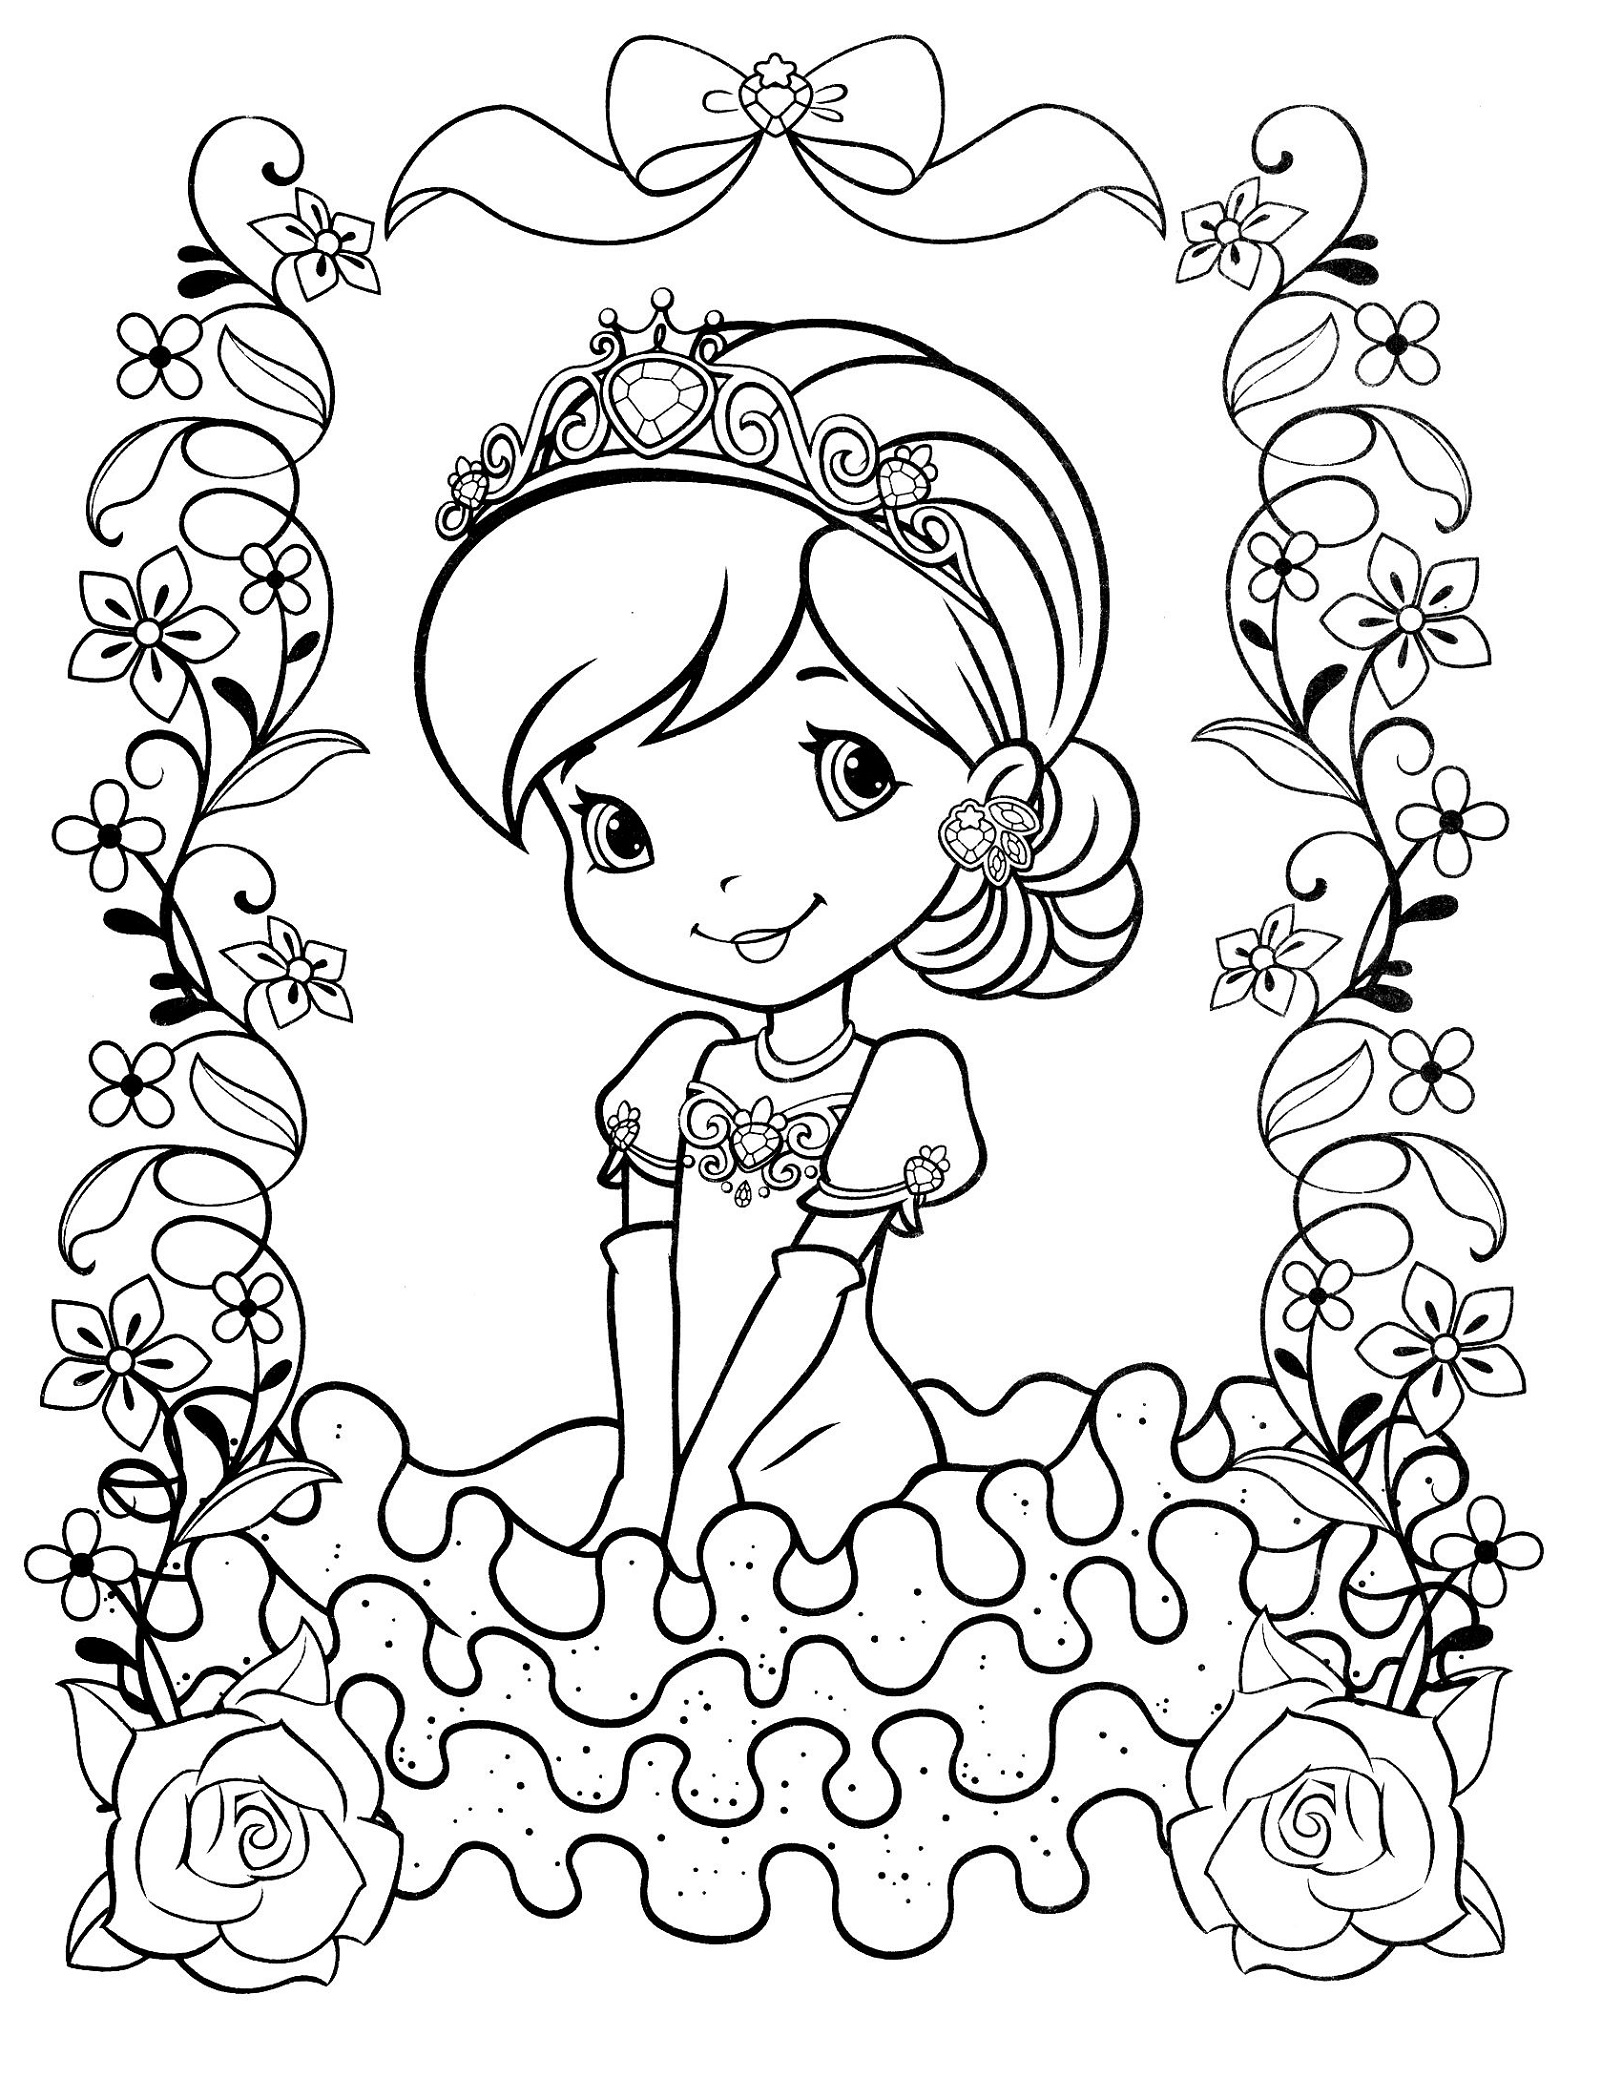 Coloring Sheets For Girls Princess